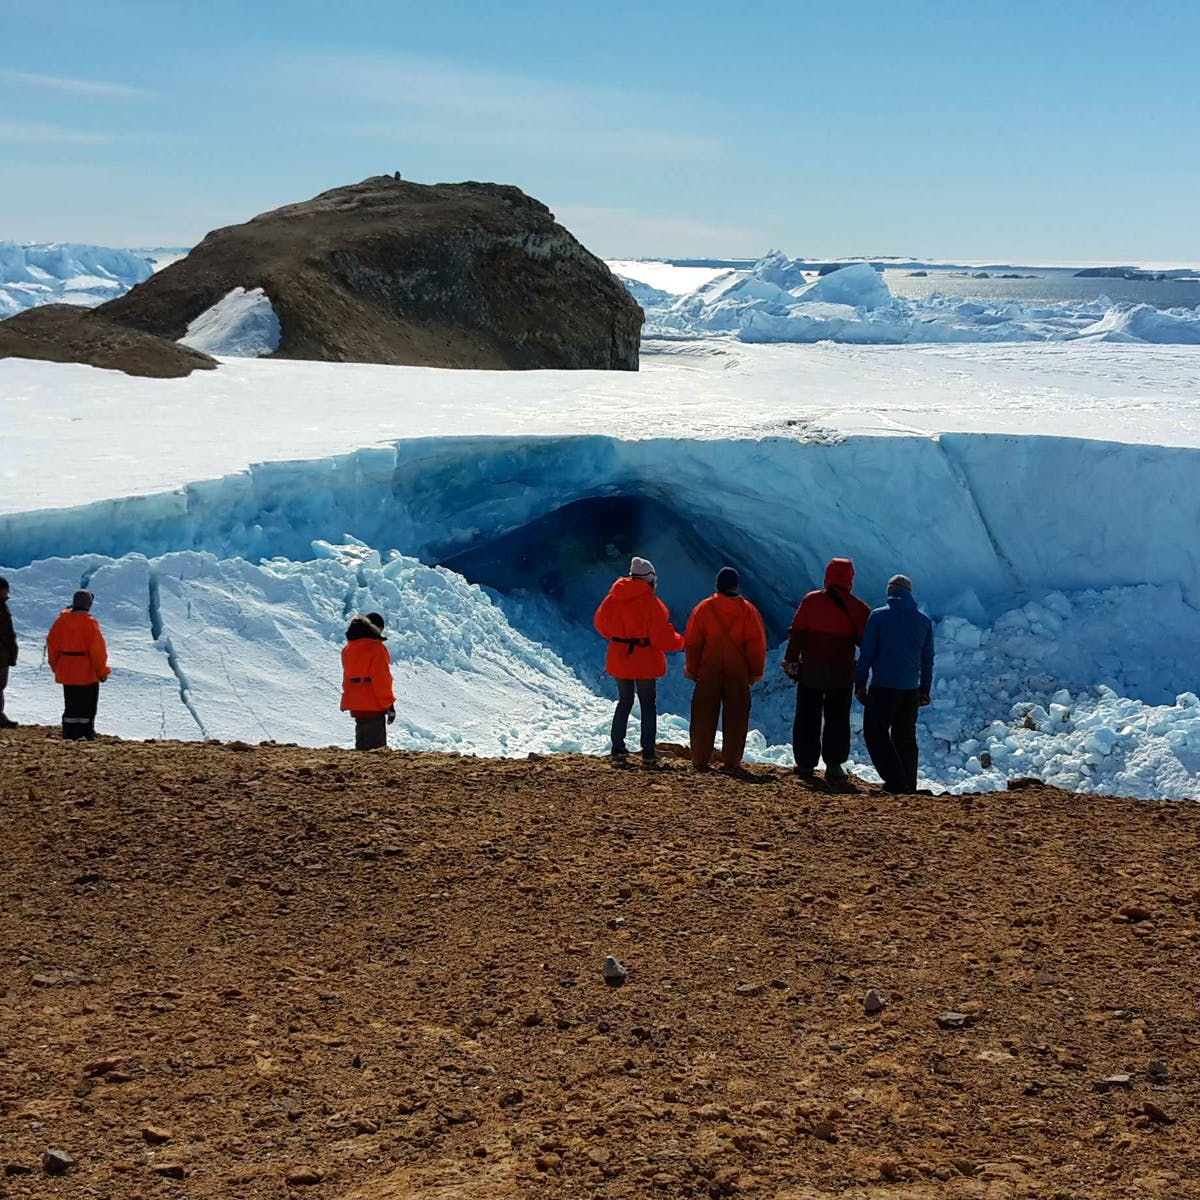 Australia wants to install military technology in Antarctica